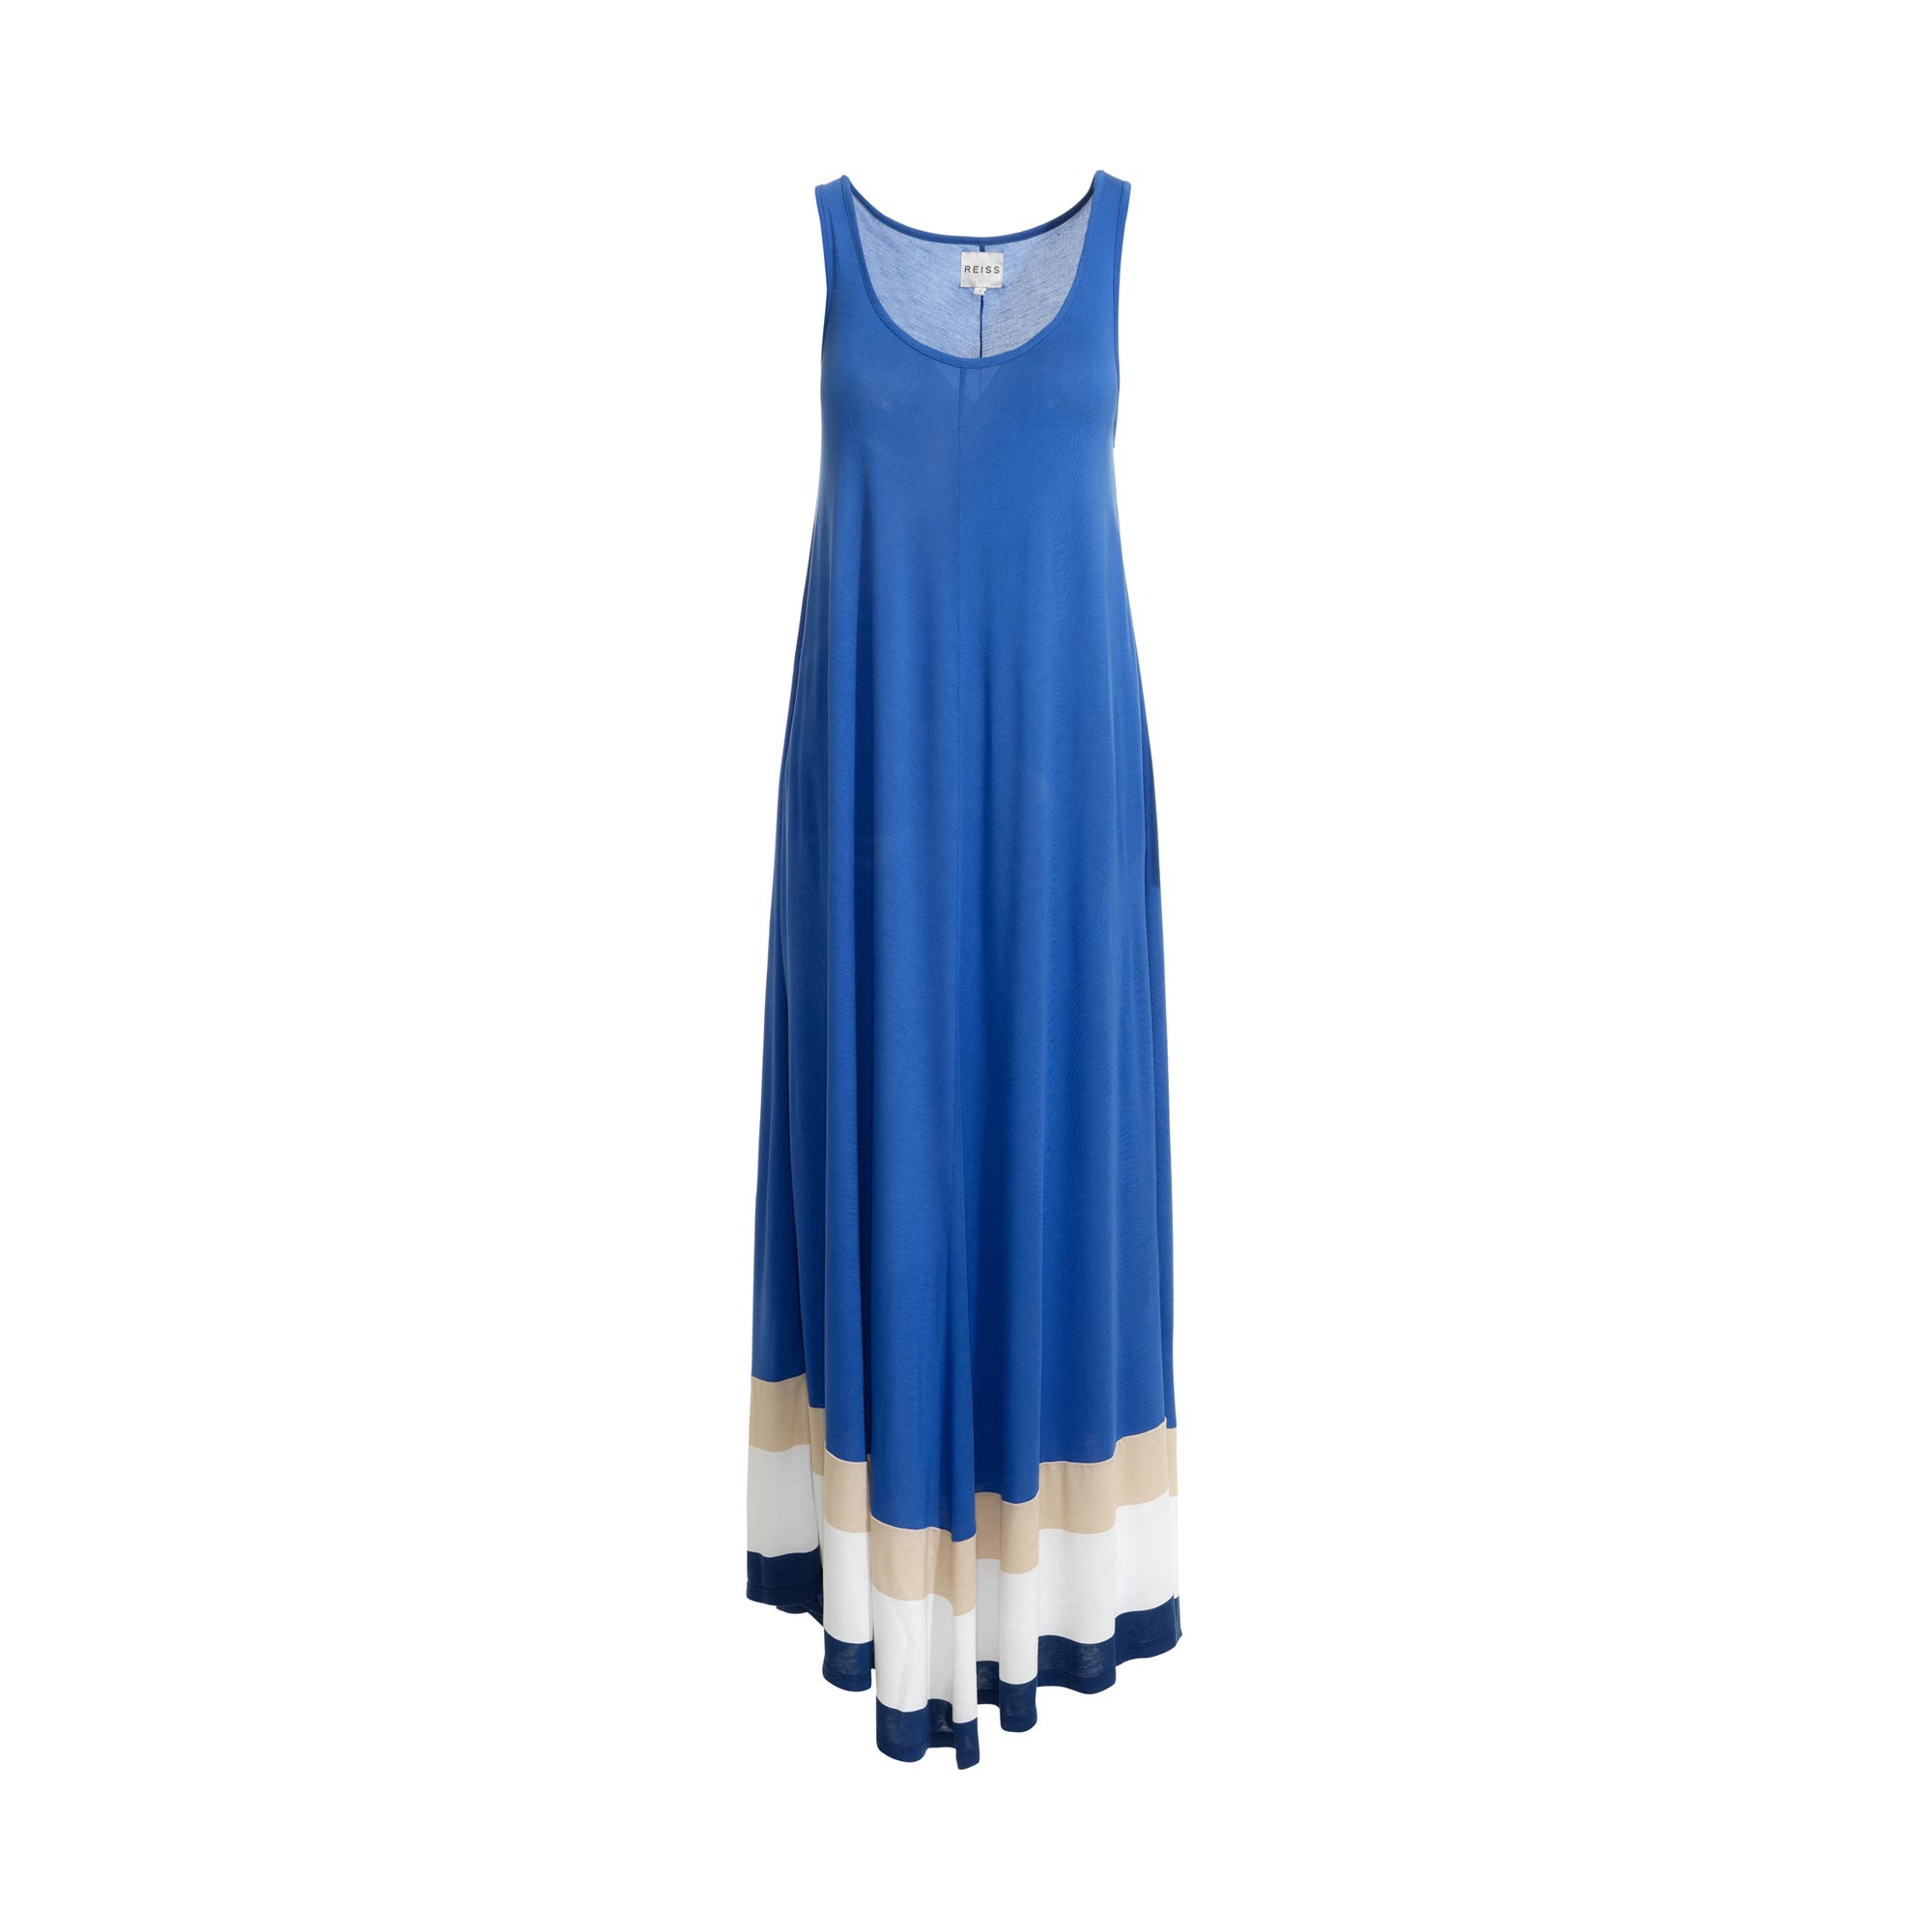 Lunchtime buy: Reiss Sardinia maxi dress